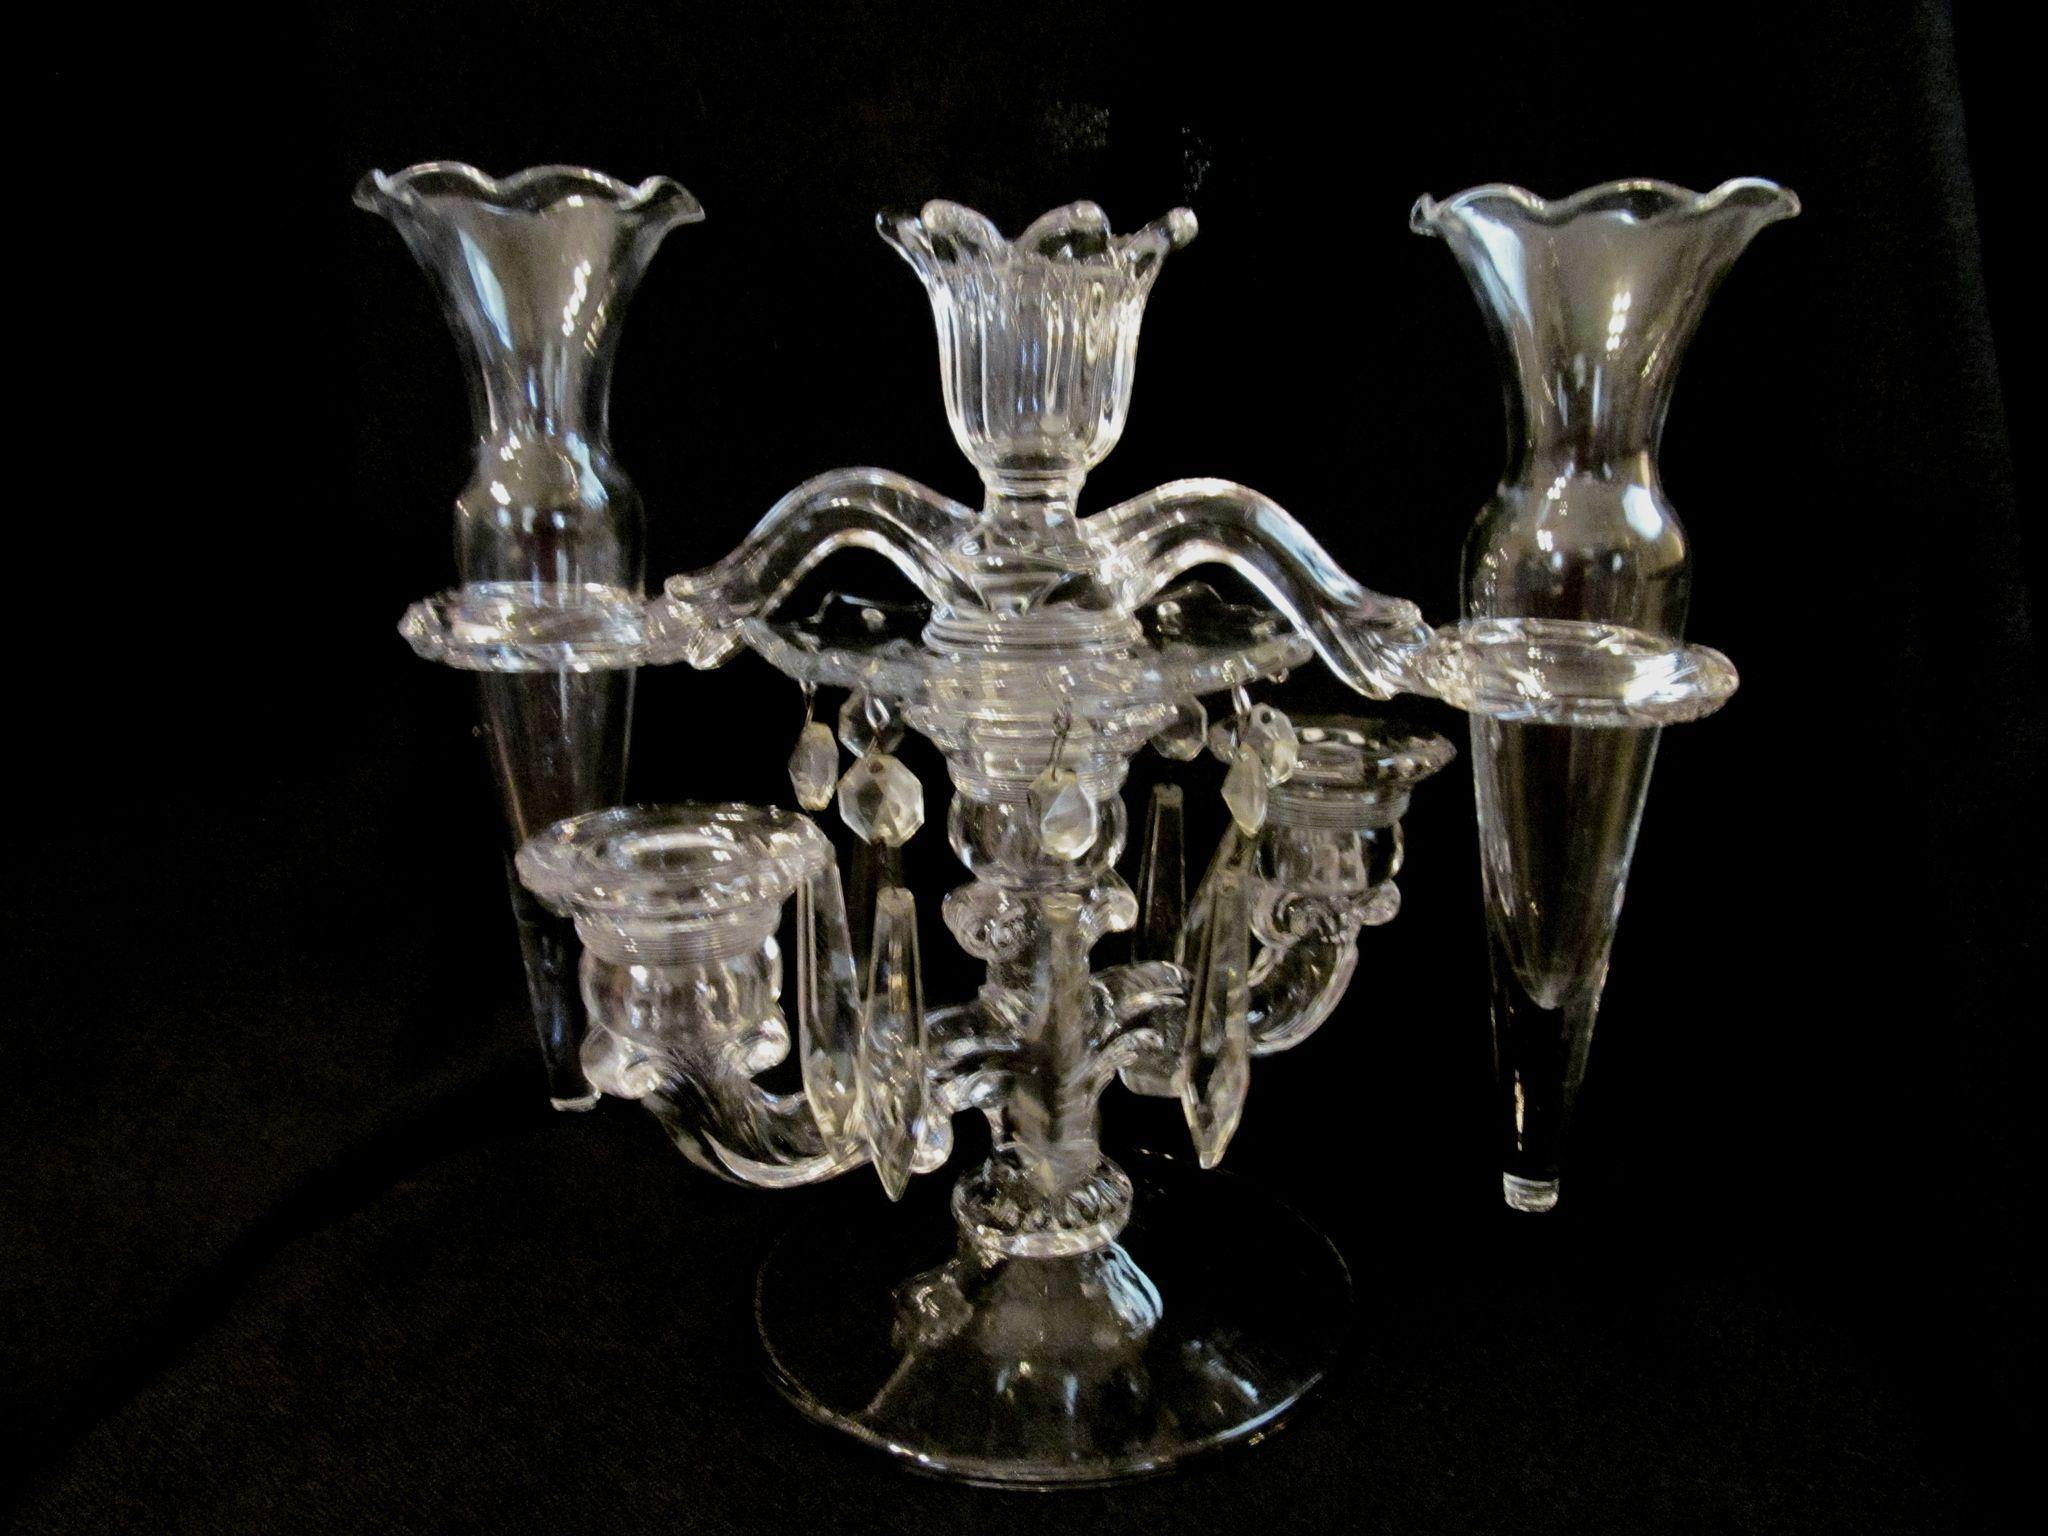 Cambridge Candelabra Epergne with Peg Vases, Bobeches and Prisms